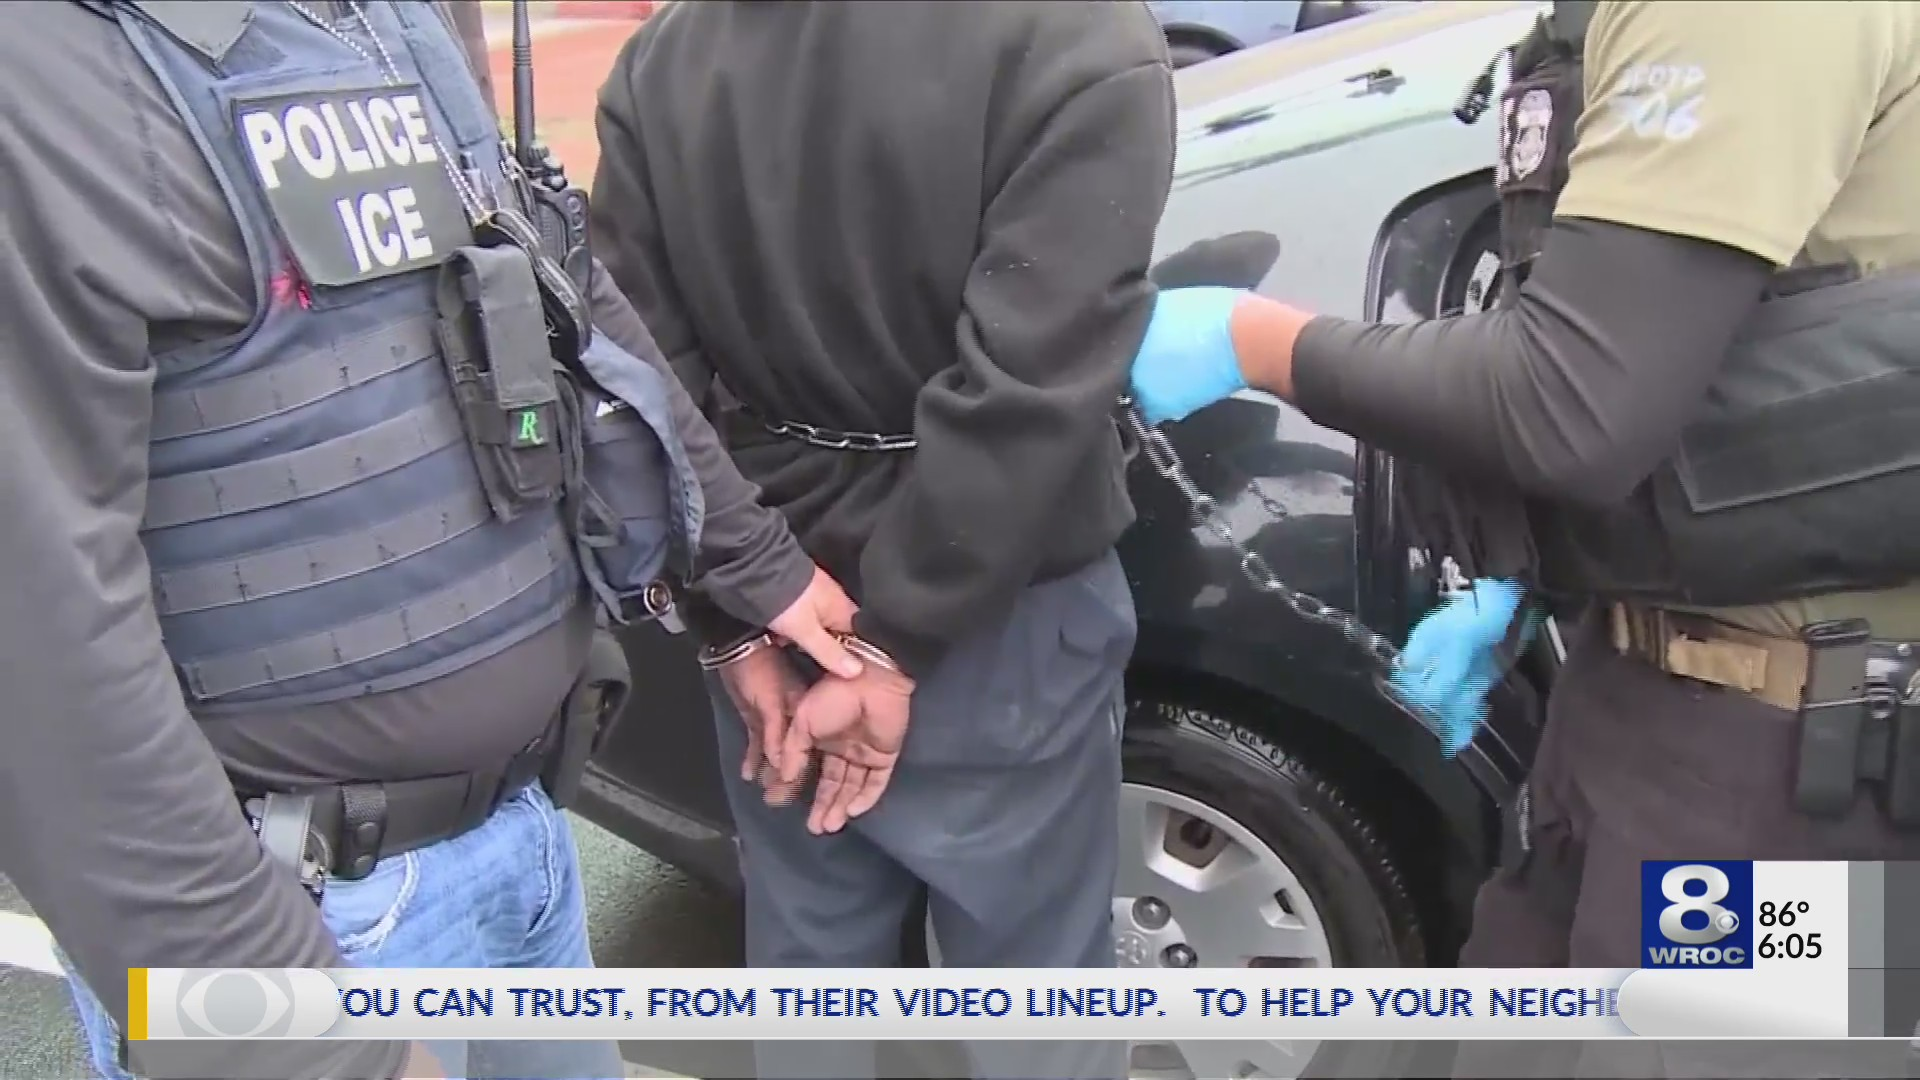 Rochester will not participate in ICE raids | RochesterFirst